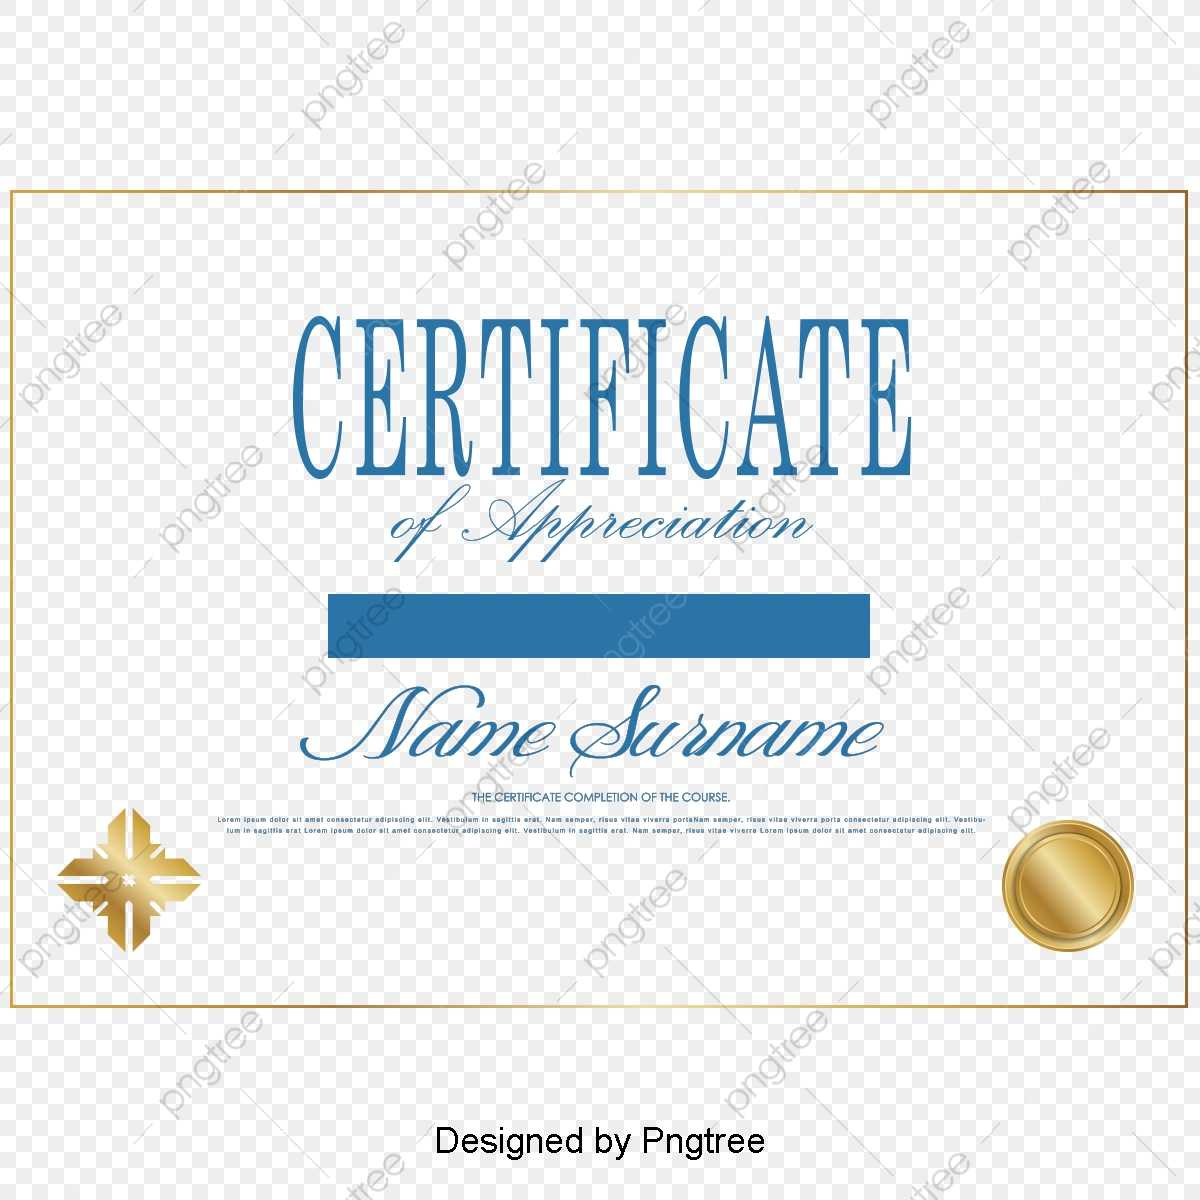 Simple Certificate Certificates Design Vector Material Intended For Update Certificates That Use Certificate Templates